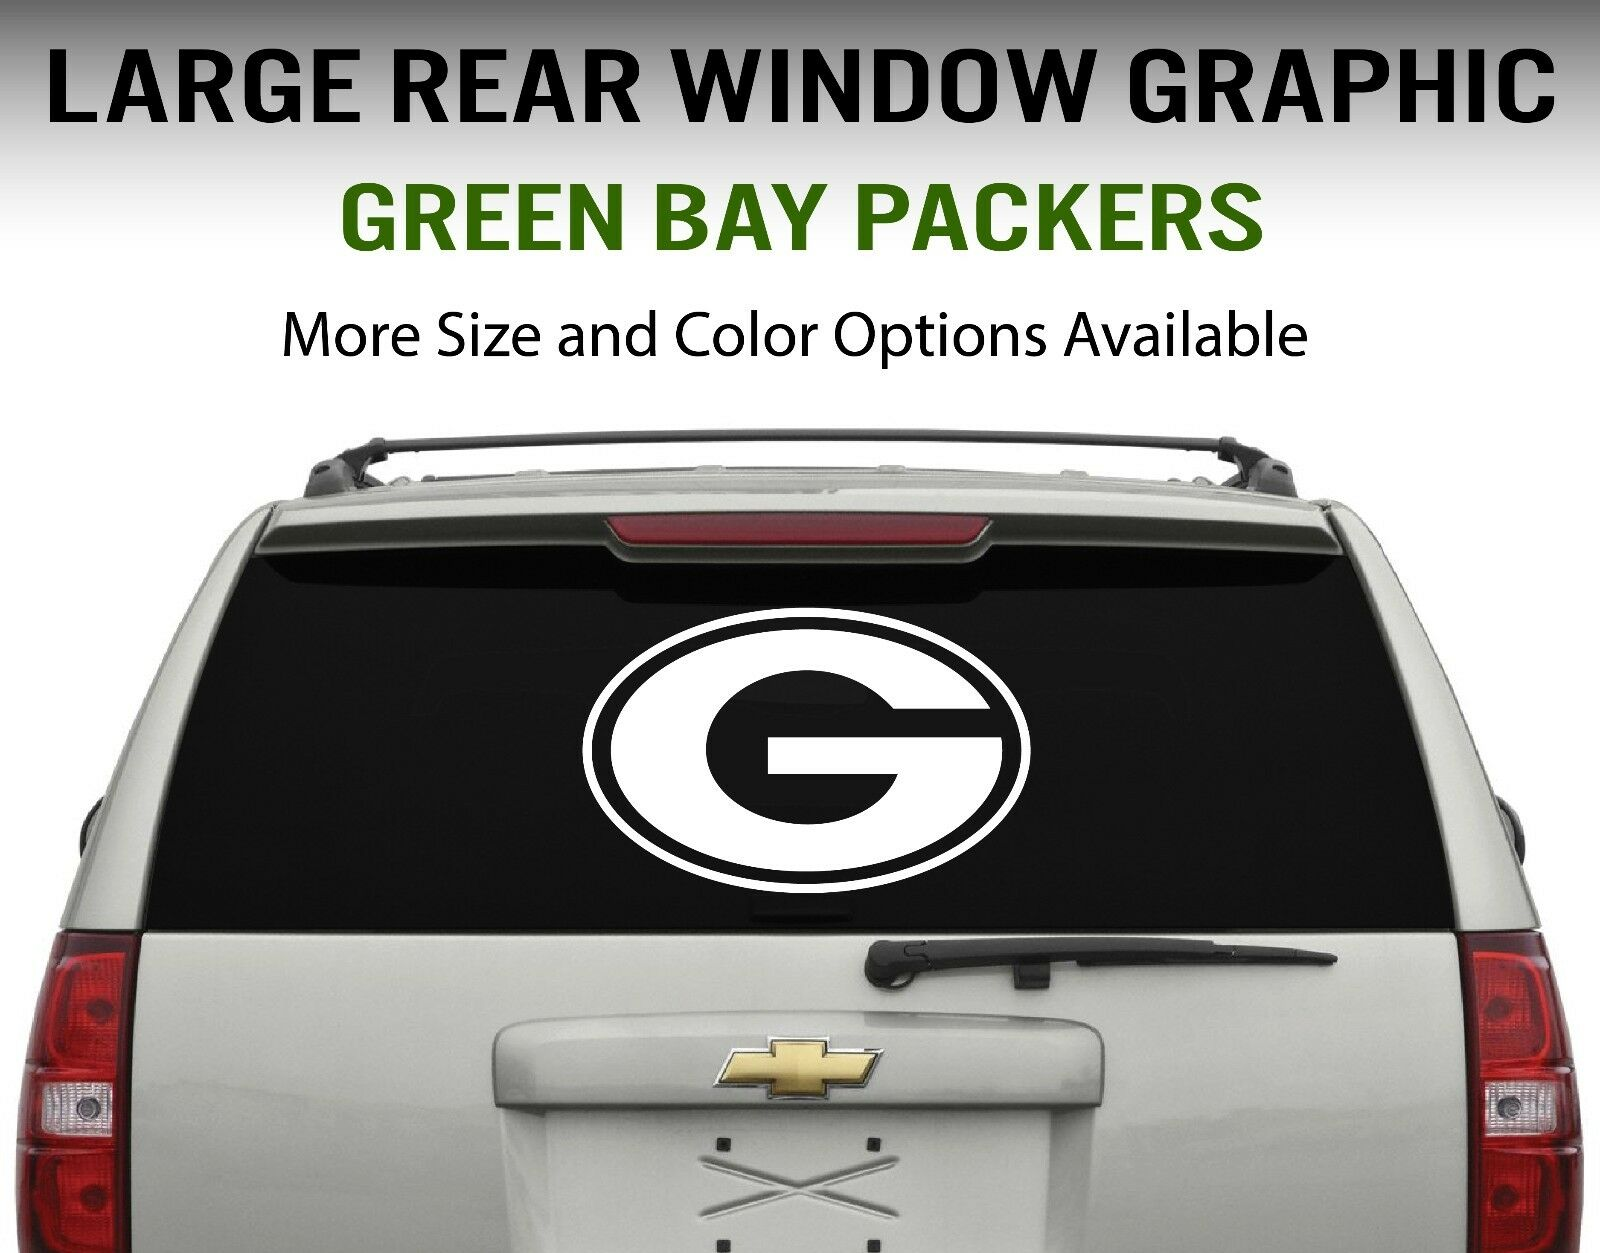 769756e0ee0 Details about Green Bay Packers Window Decal Graphic Sticker Car Truck SUV  - Choose Size